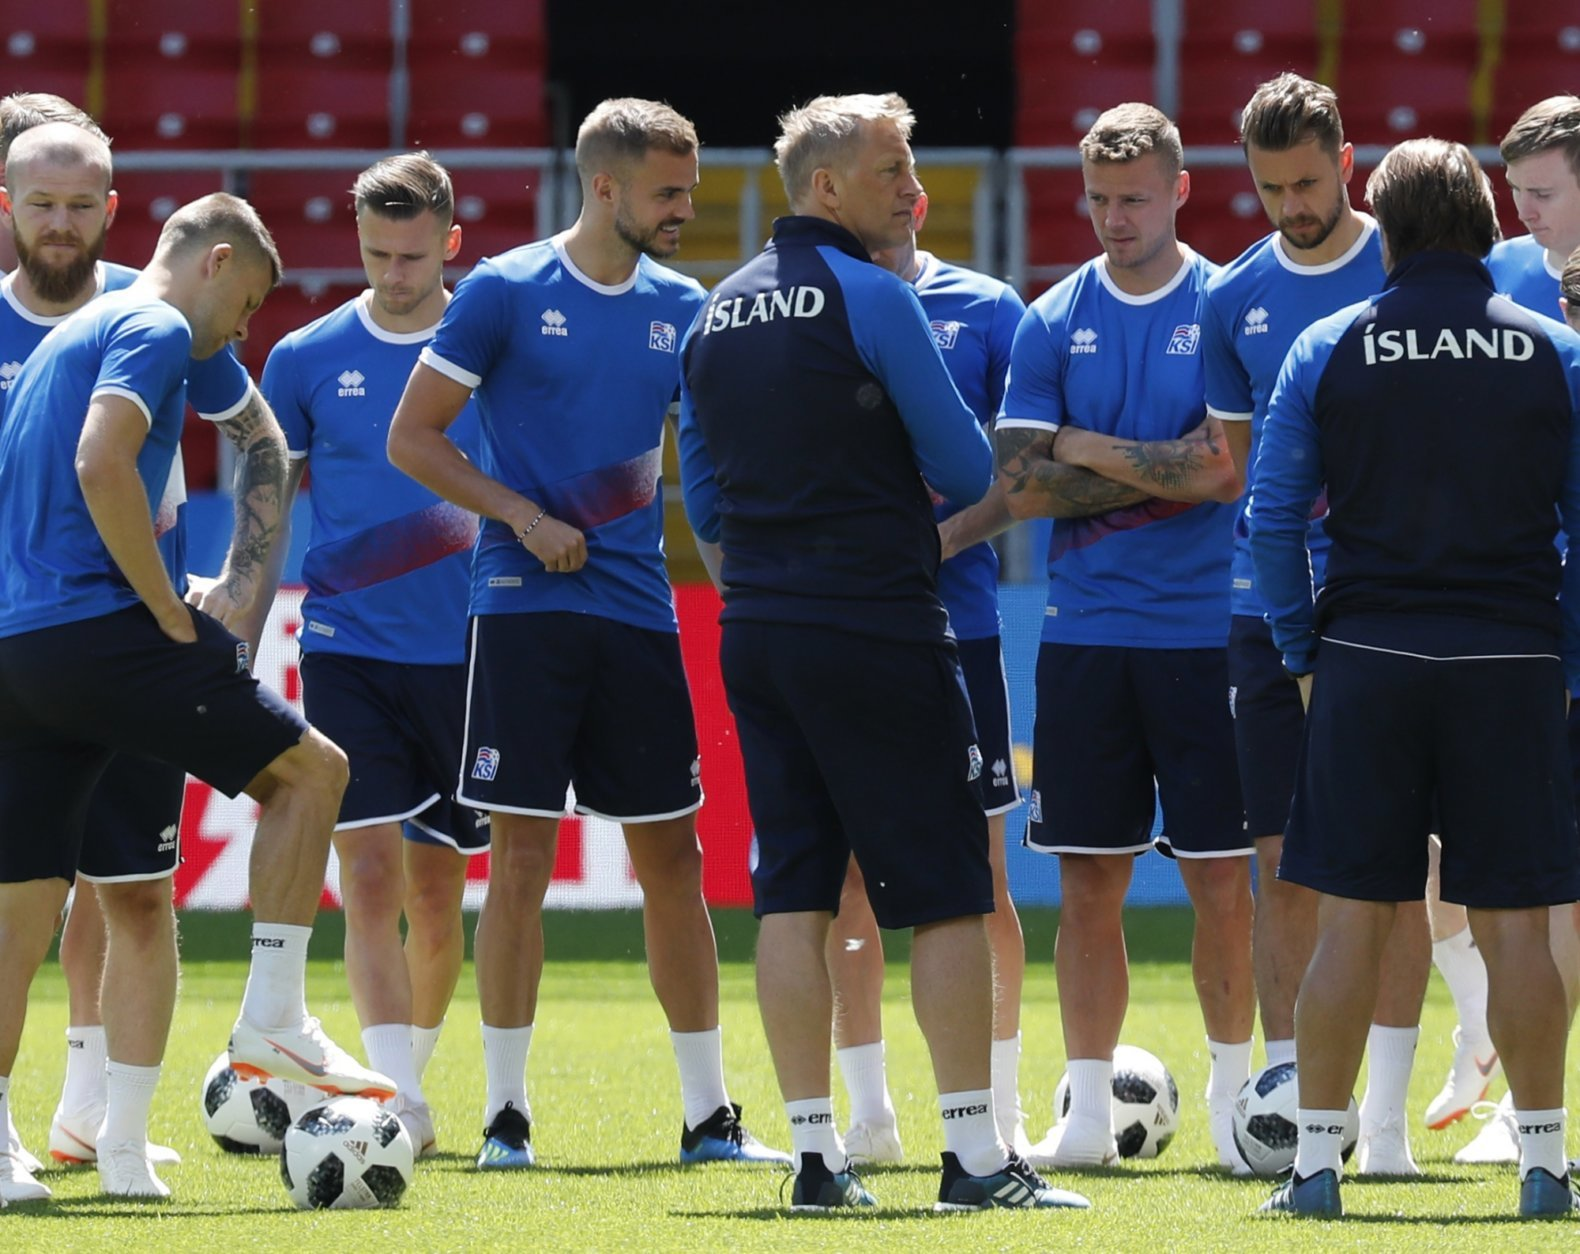 Iceland coach Heimar Hallgrimsson, center, talks with his players at the start of Iceland's official training on the eve of the group D match between Argentina and Iceland at the 2018 soccer World Cup in Spartak Stadium in Moscow, Russia, Friday, June 15, 2018. (AP Photo/Rebecca Blackwell)